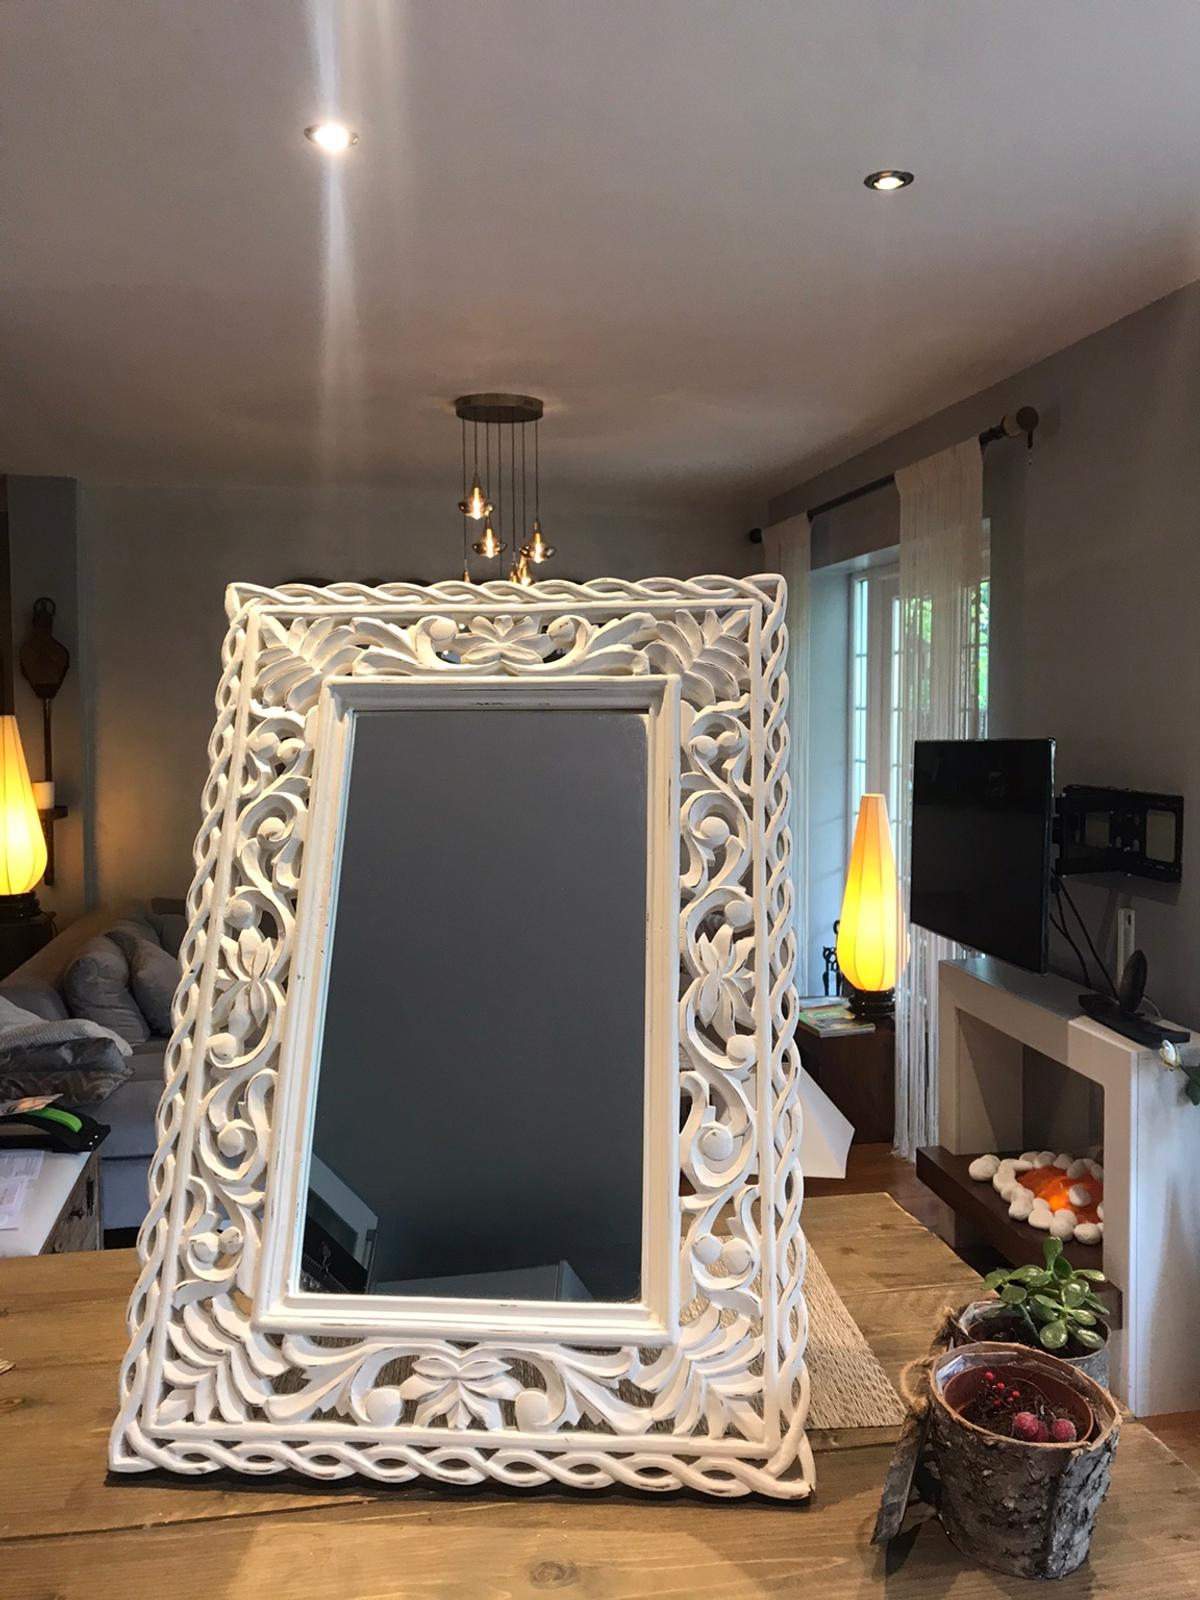 A brand new mirror, with a white ,wooden frame that could also be used as a picture frame. The mirror also has a stand at the back. Dimension:  Frame Height-65 Width-45  Mirror Height-43 Width-24cm